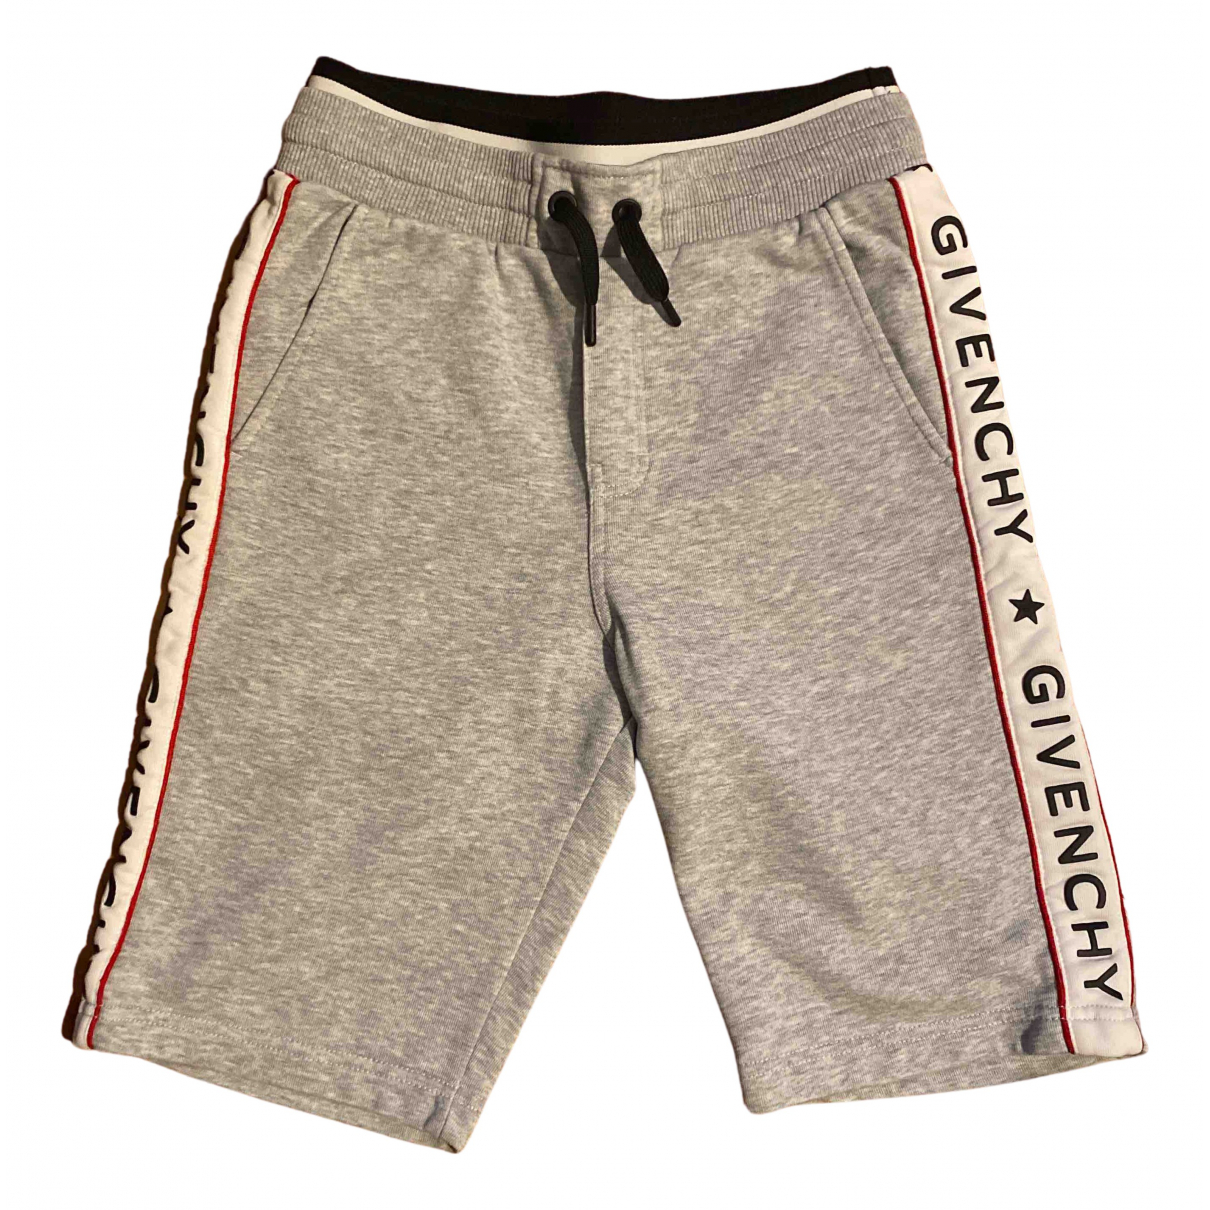 Givenchy N Grey Cotton Shorts for Kids 10 years - up to 142cm FR